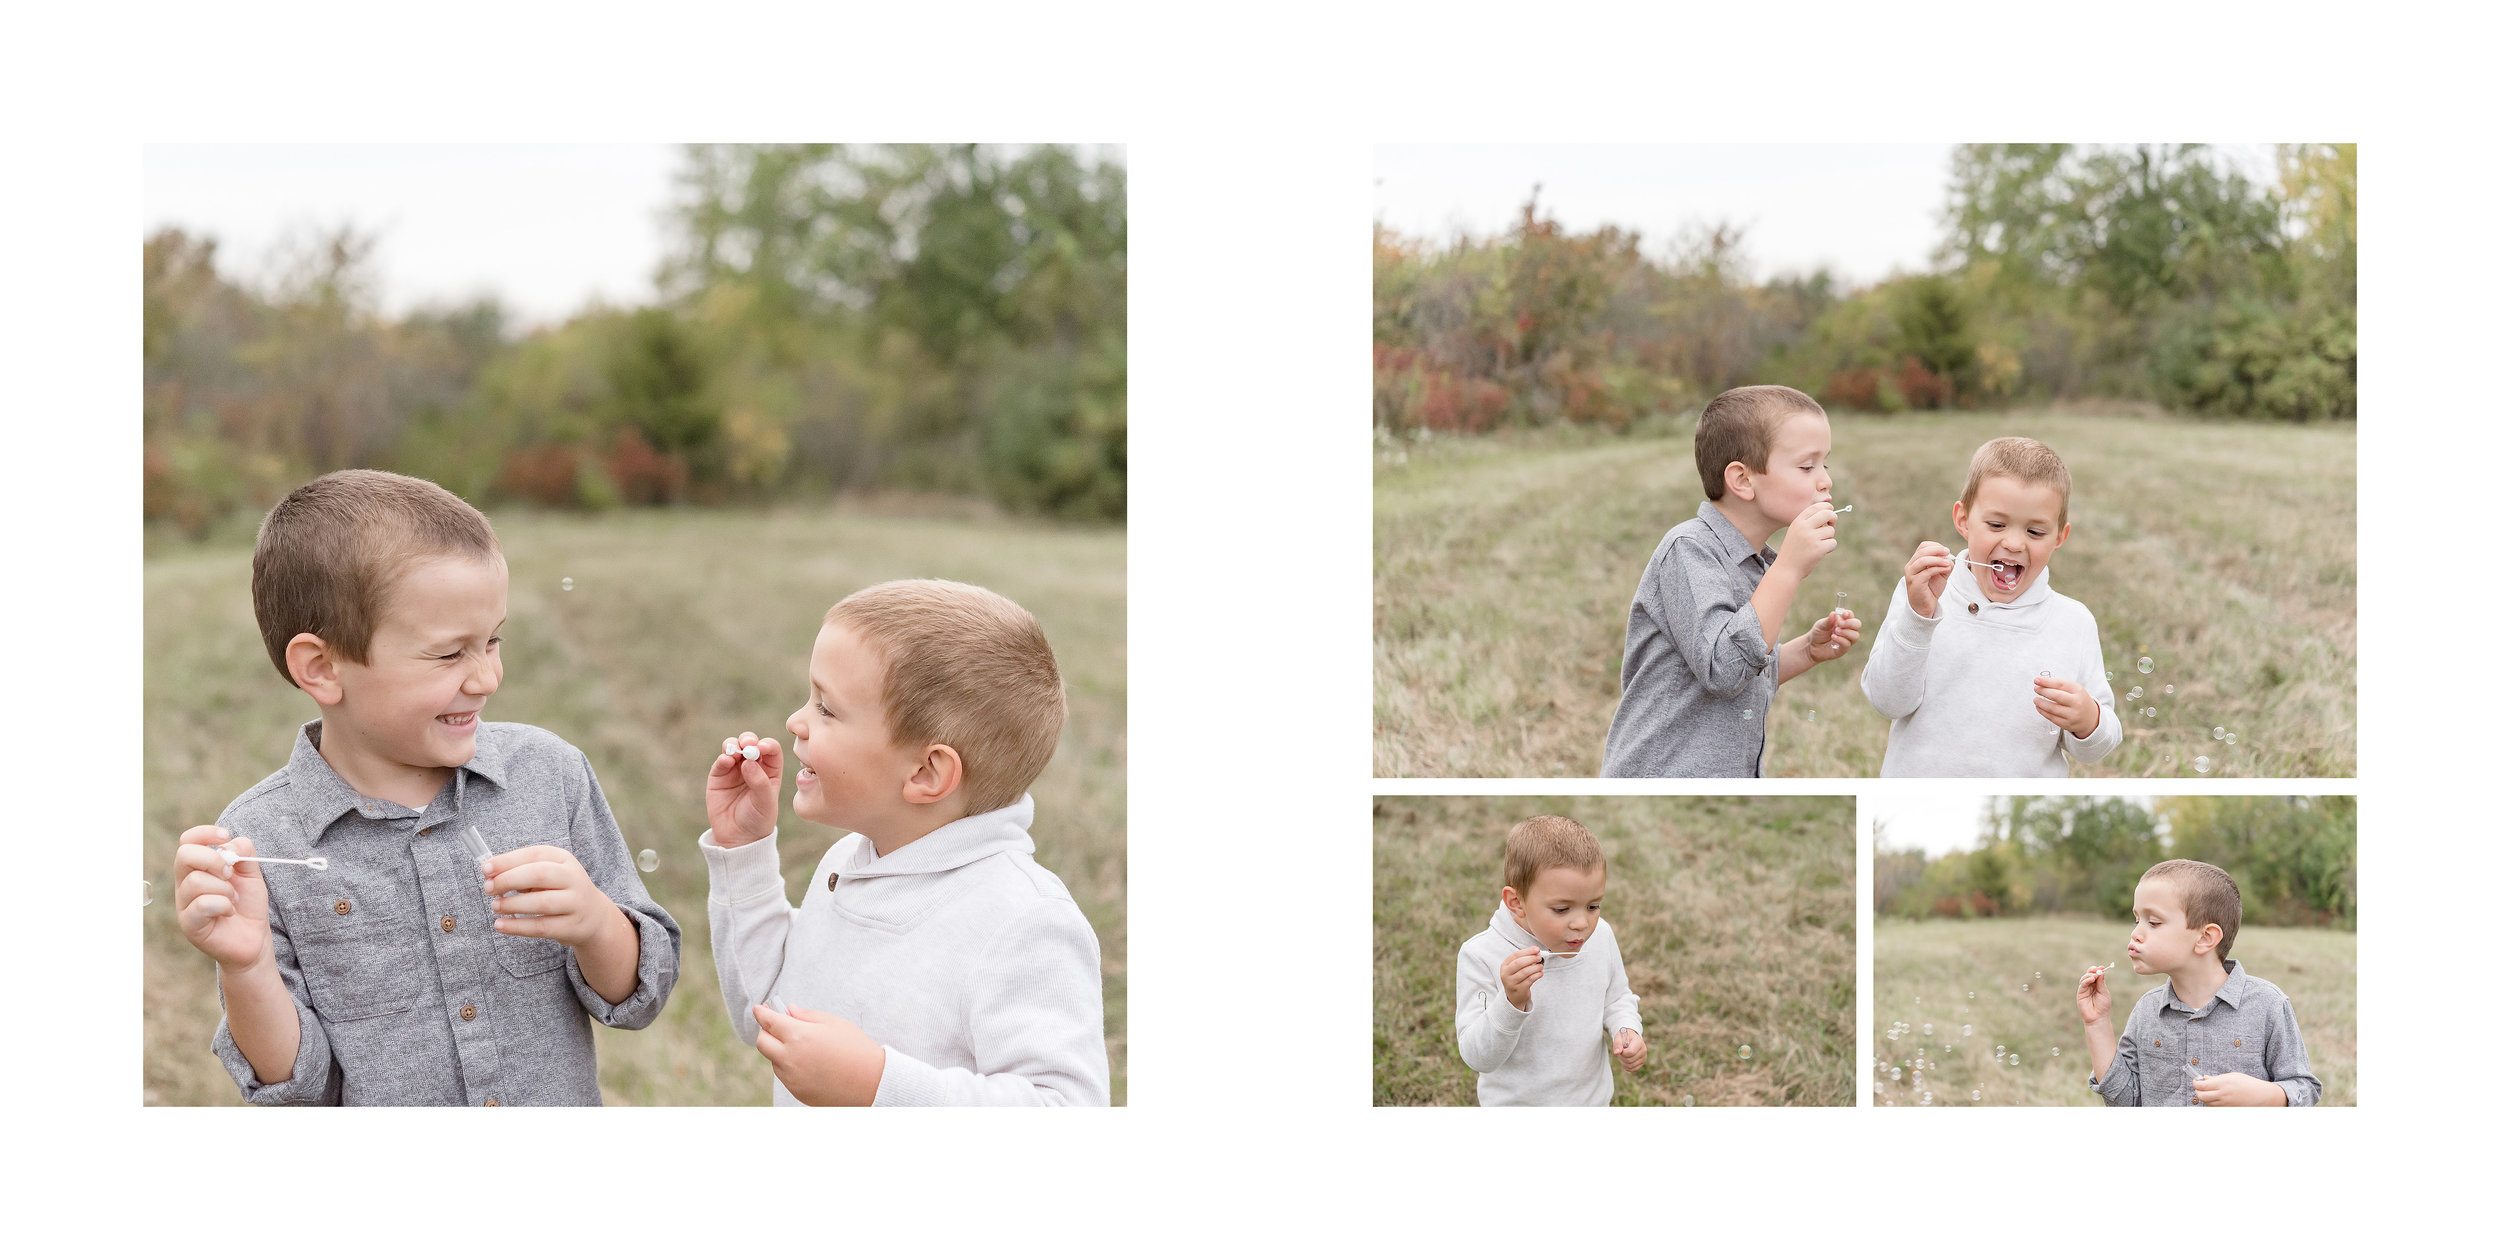 Brother blowing bubbles